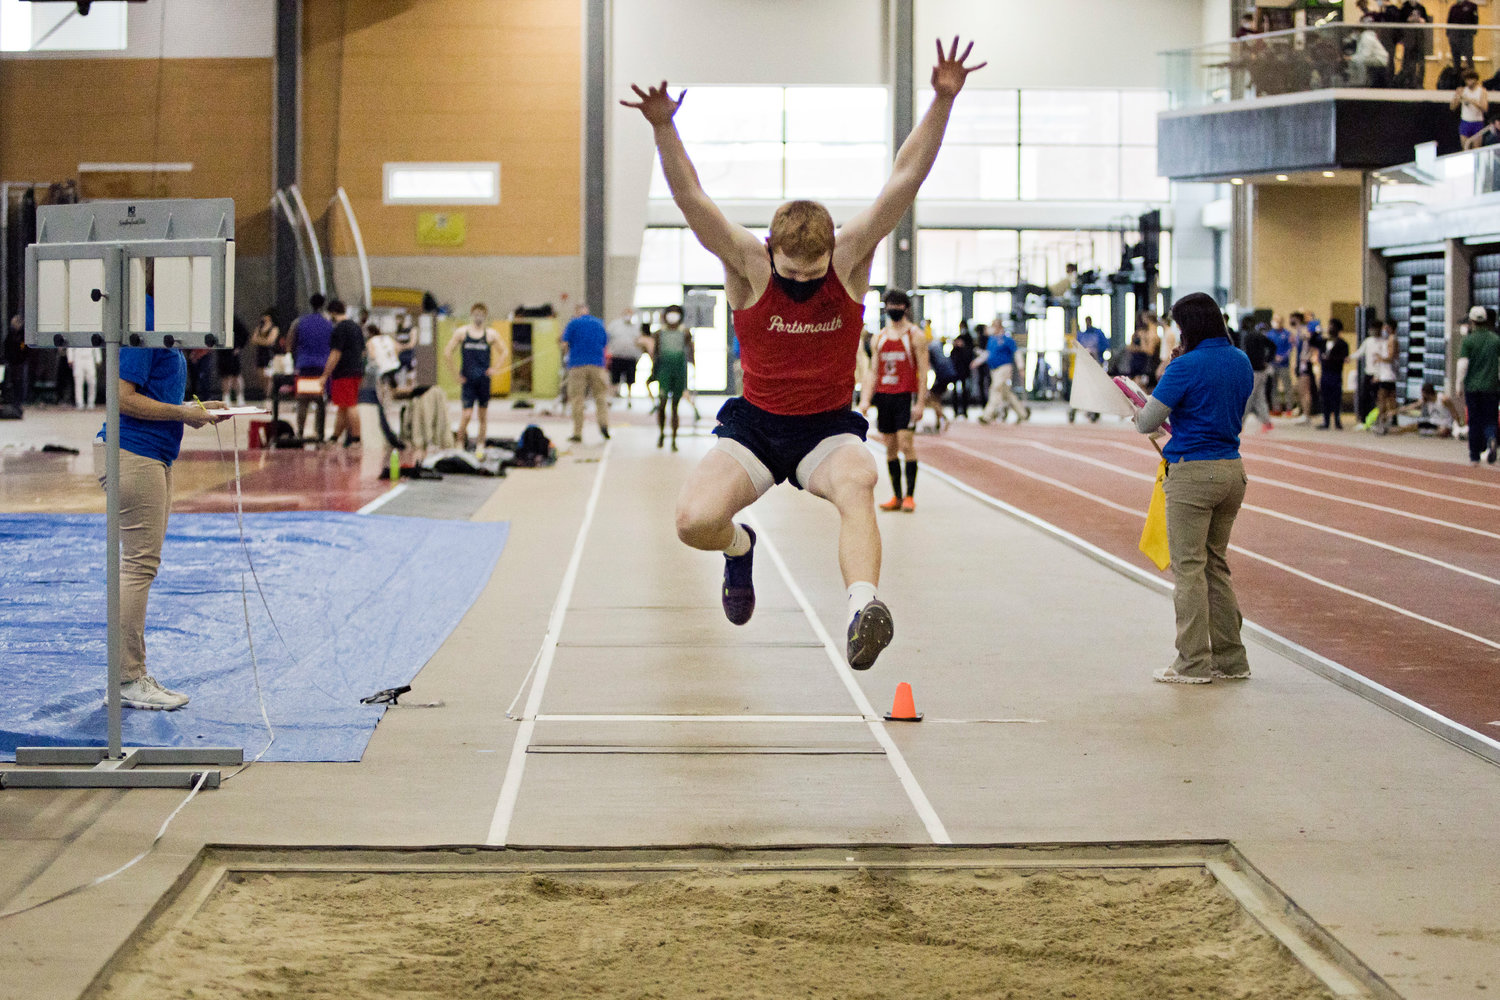 The Patriots' Colby Fahrney won the boys' long jump event at the Rhode Island Indoor Track State Championship Saturday at the Providence Career & Technical Academy. His best leap was 22 feet, 1.75 inches.